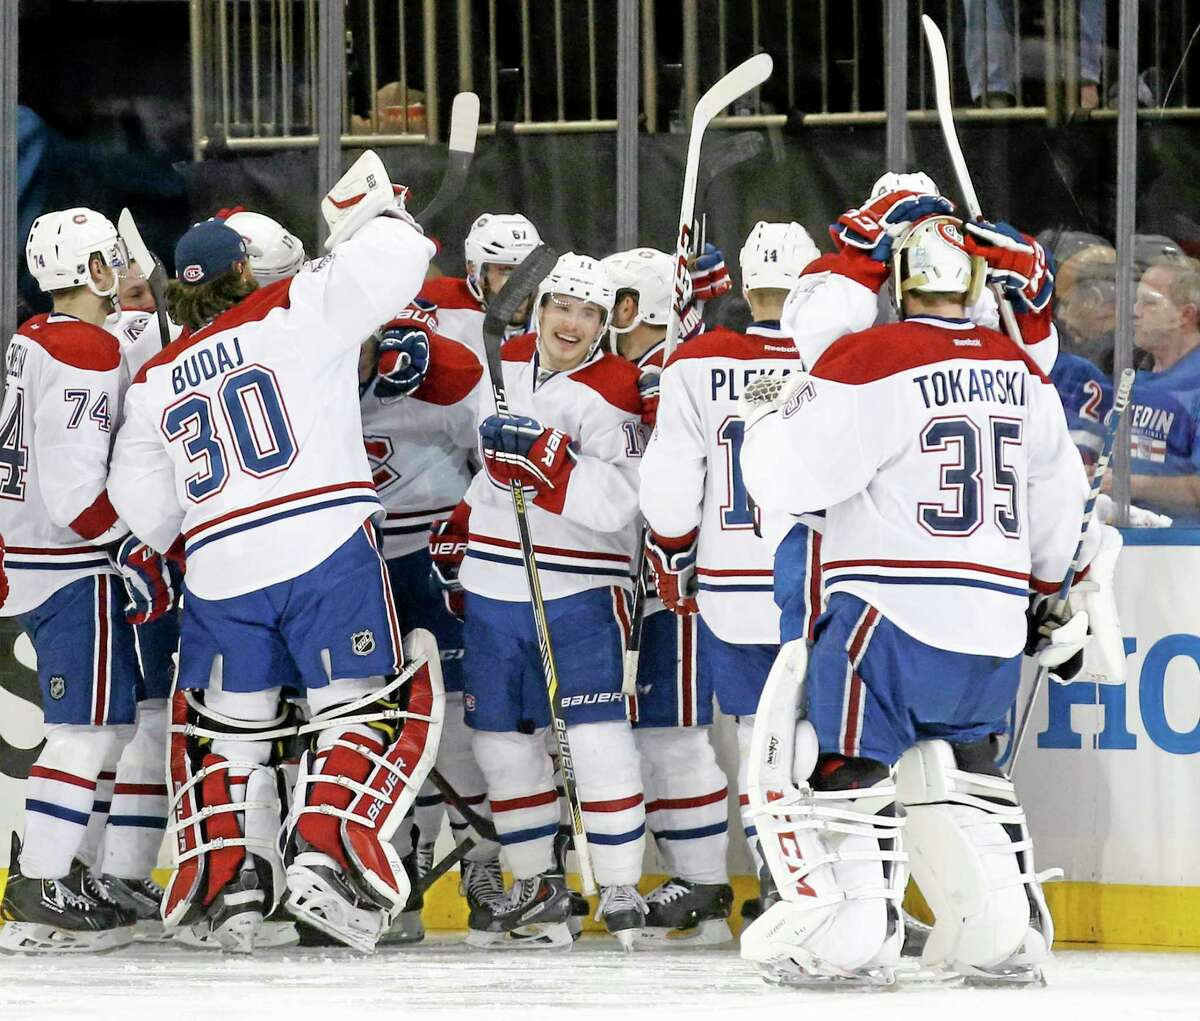 The Montreal Canadiens celebrate after defeating the New York Rangers 3-2 in overtime in Game 3 of the Stanley Cup playoffs Eastern Conference finals.